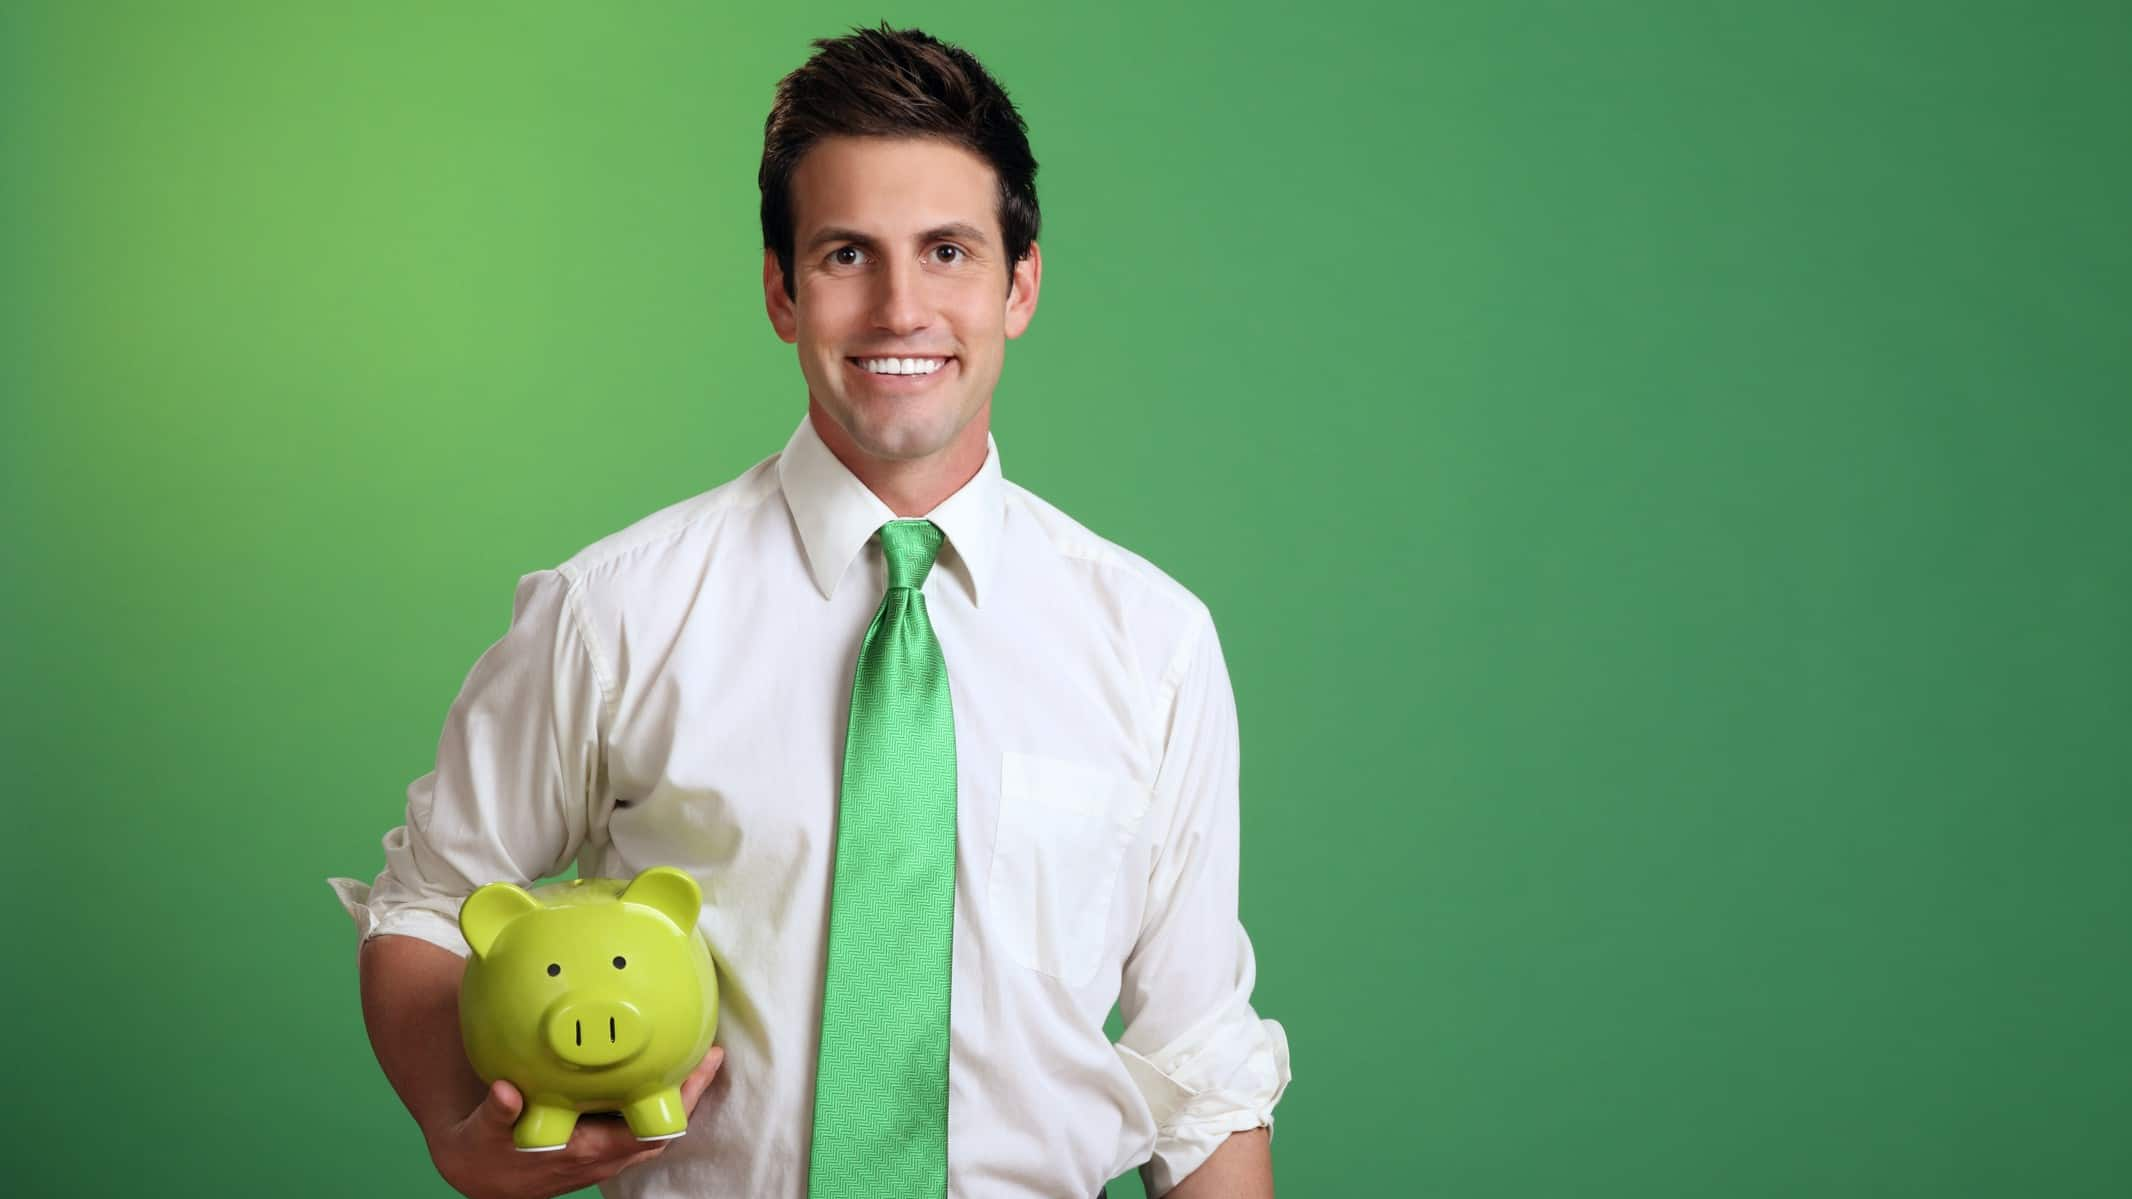 Young man in white shirt and green tie with green background holding green piggy bank